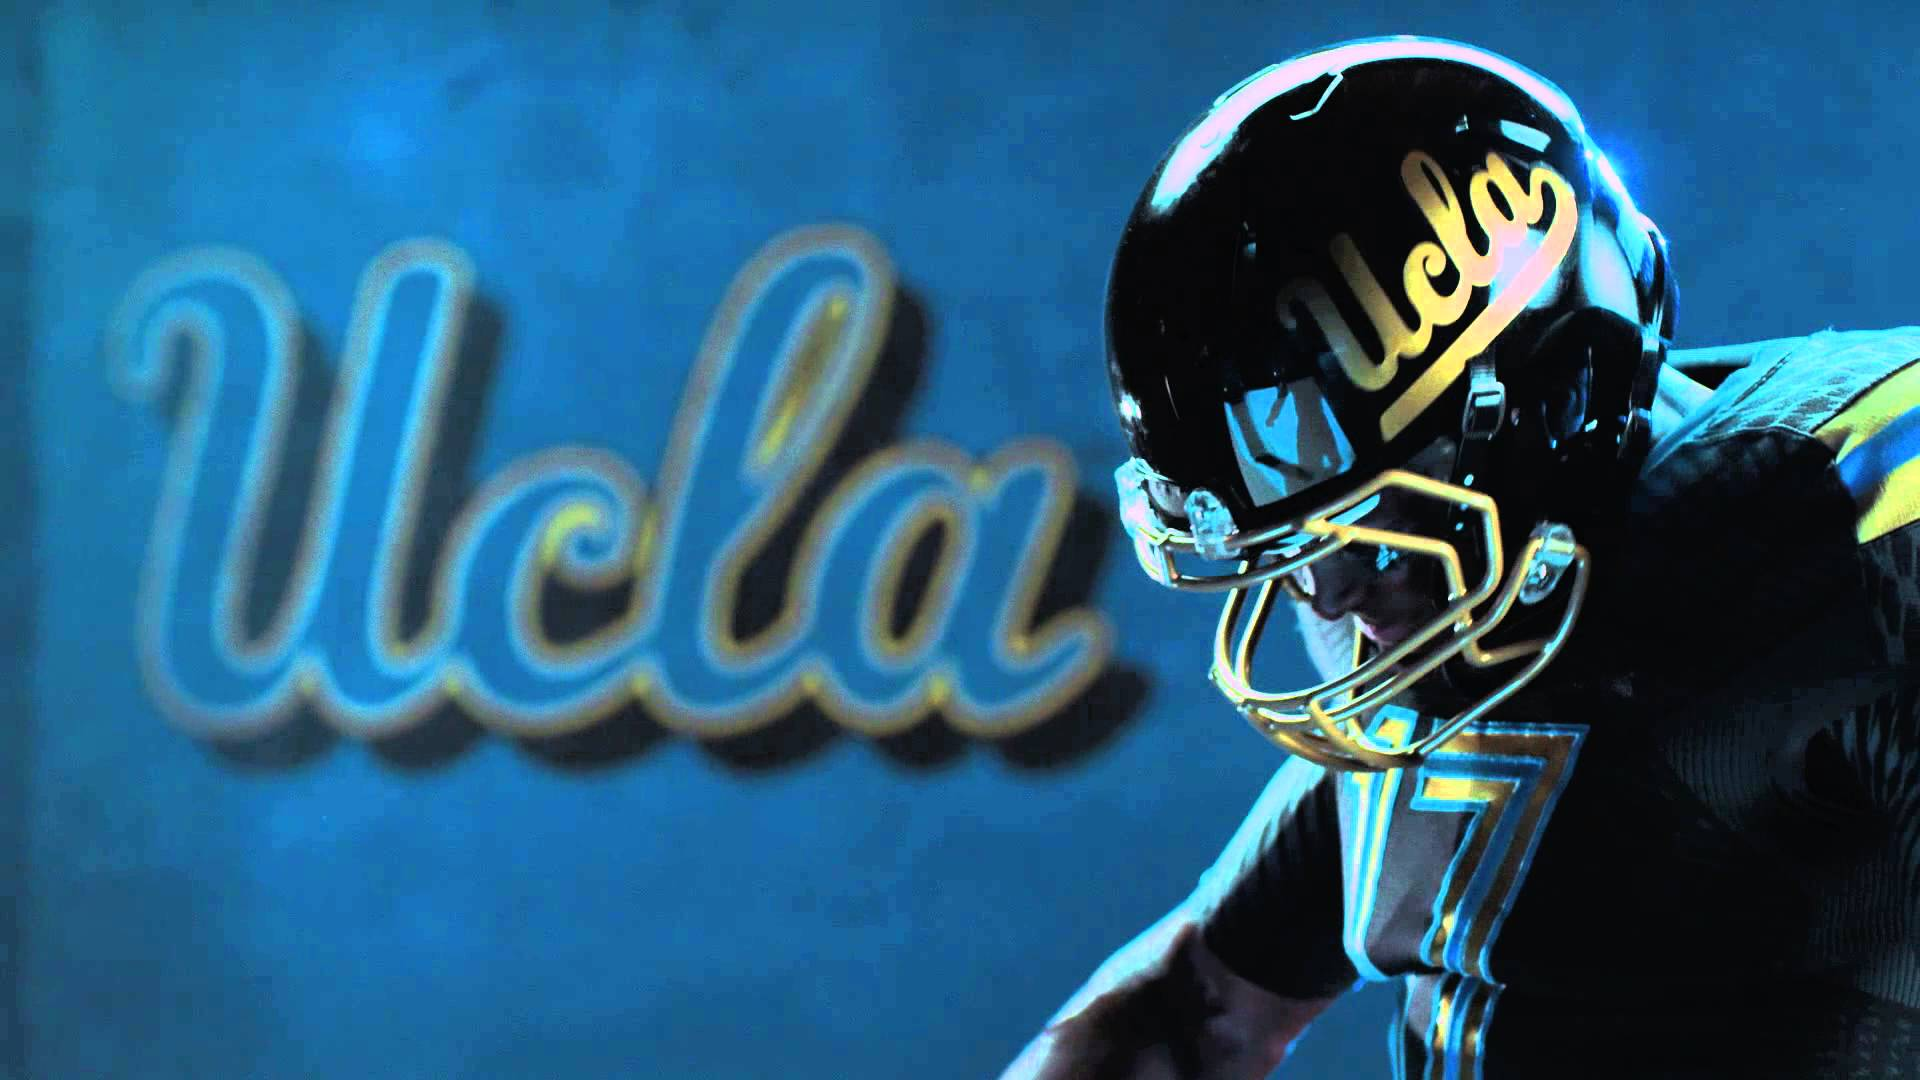 Ucla Football Wallpaper